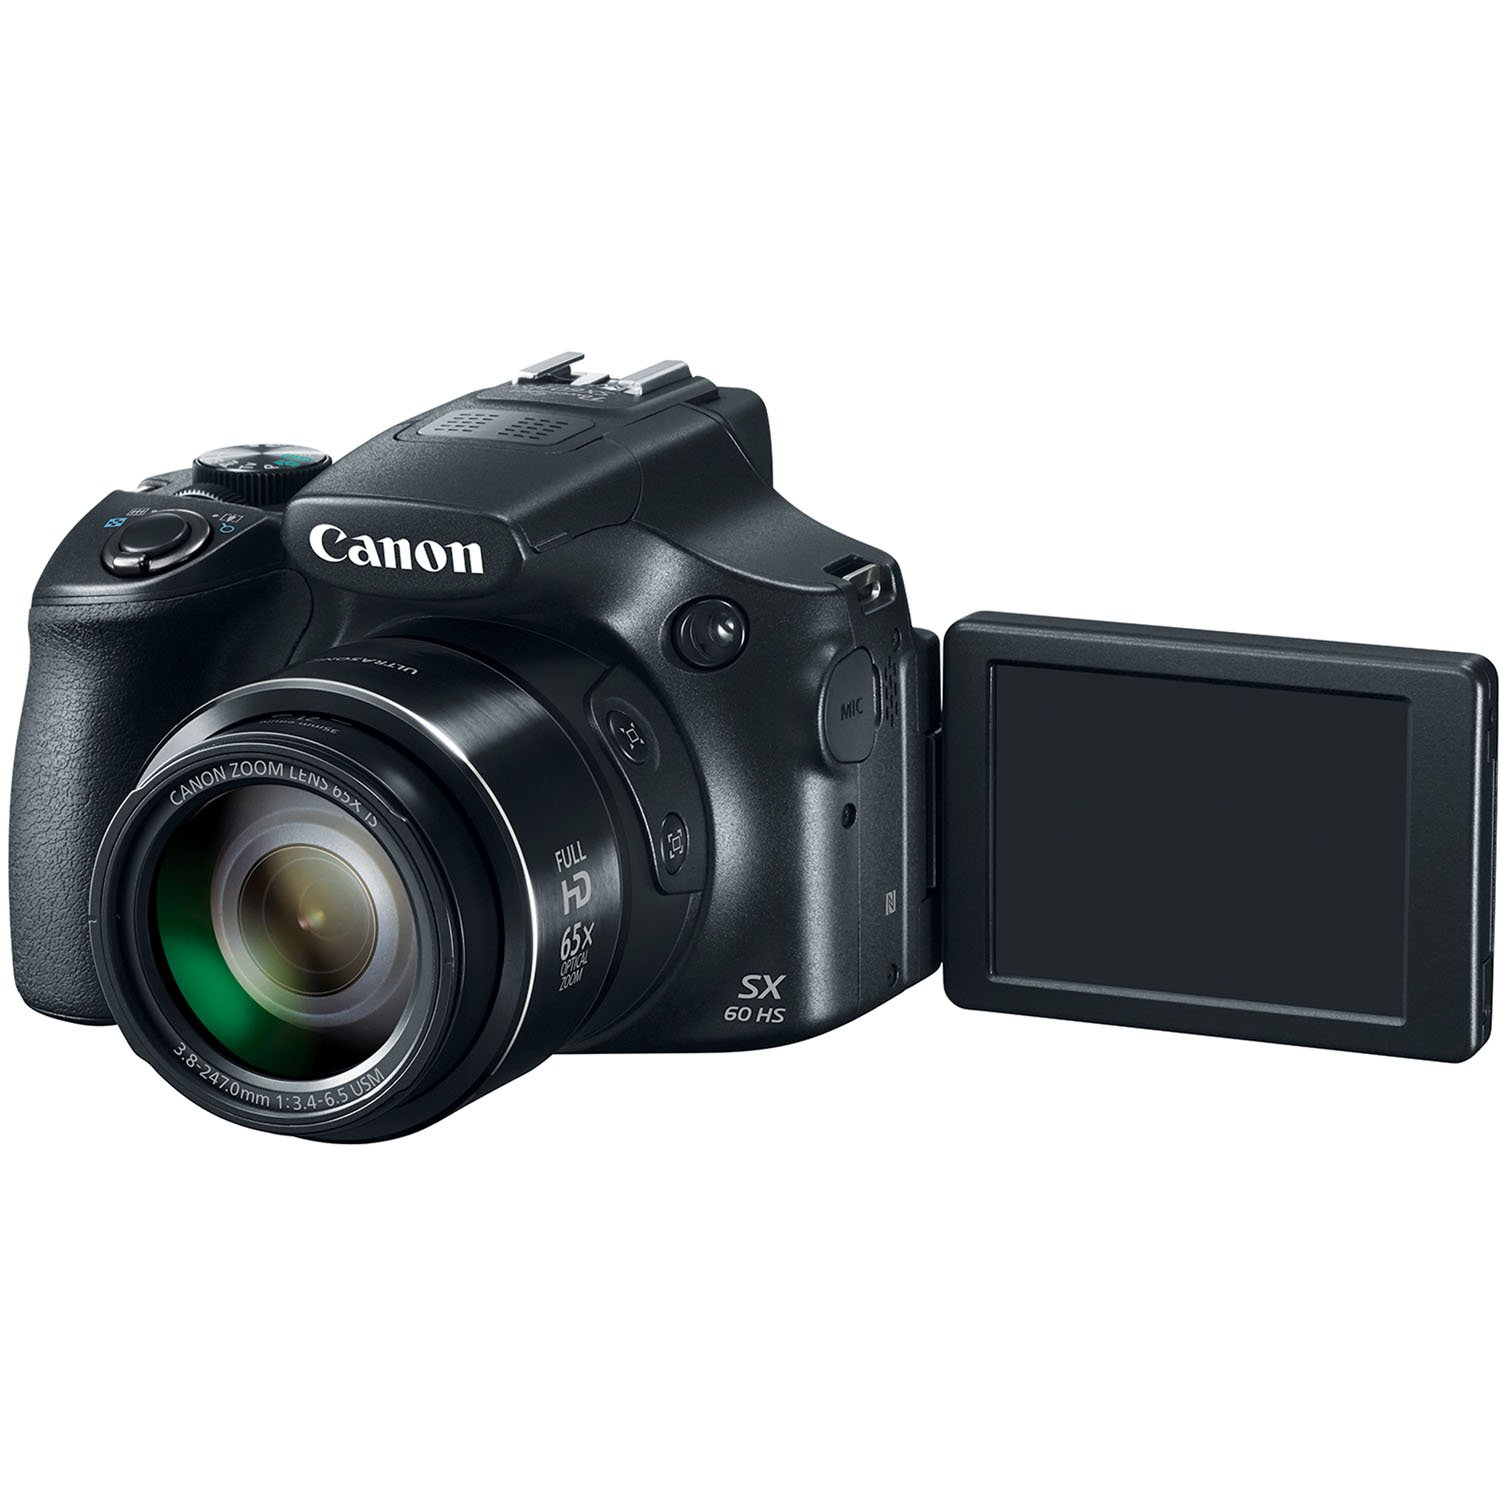 Canon Powershot Sx60 161mp Digital Camera 65x Optical Video Circuit Board Front Flickr Photo Sharing Zoom Lens 3 Inch Lcd Tilt Screen Black